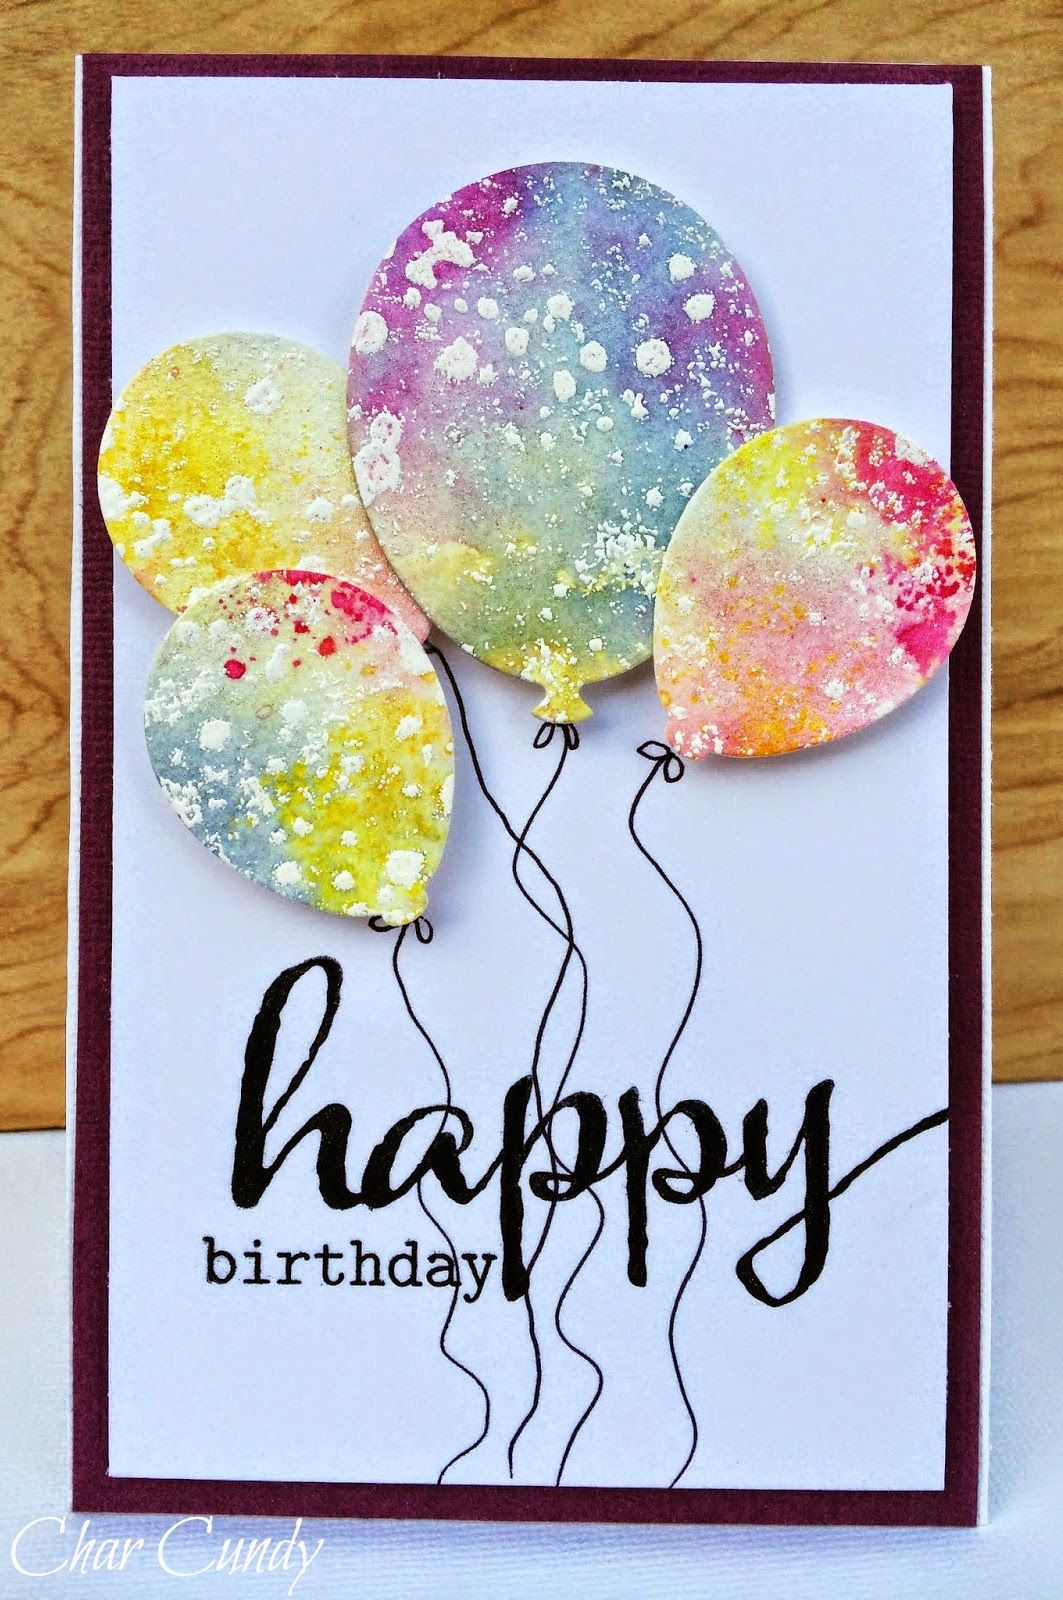 Handmade Birthday Card From Expressions Of Me A Little Watercoloring Delightful Punched Die Cut Balloons Fanciful Watercolored Paper Fab